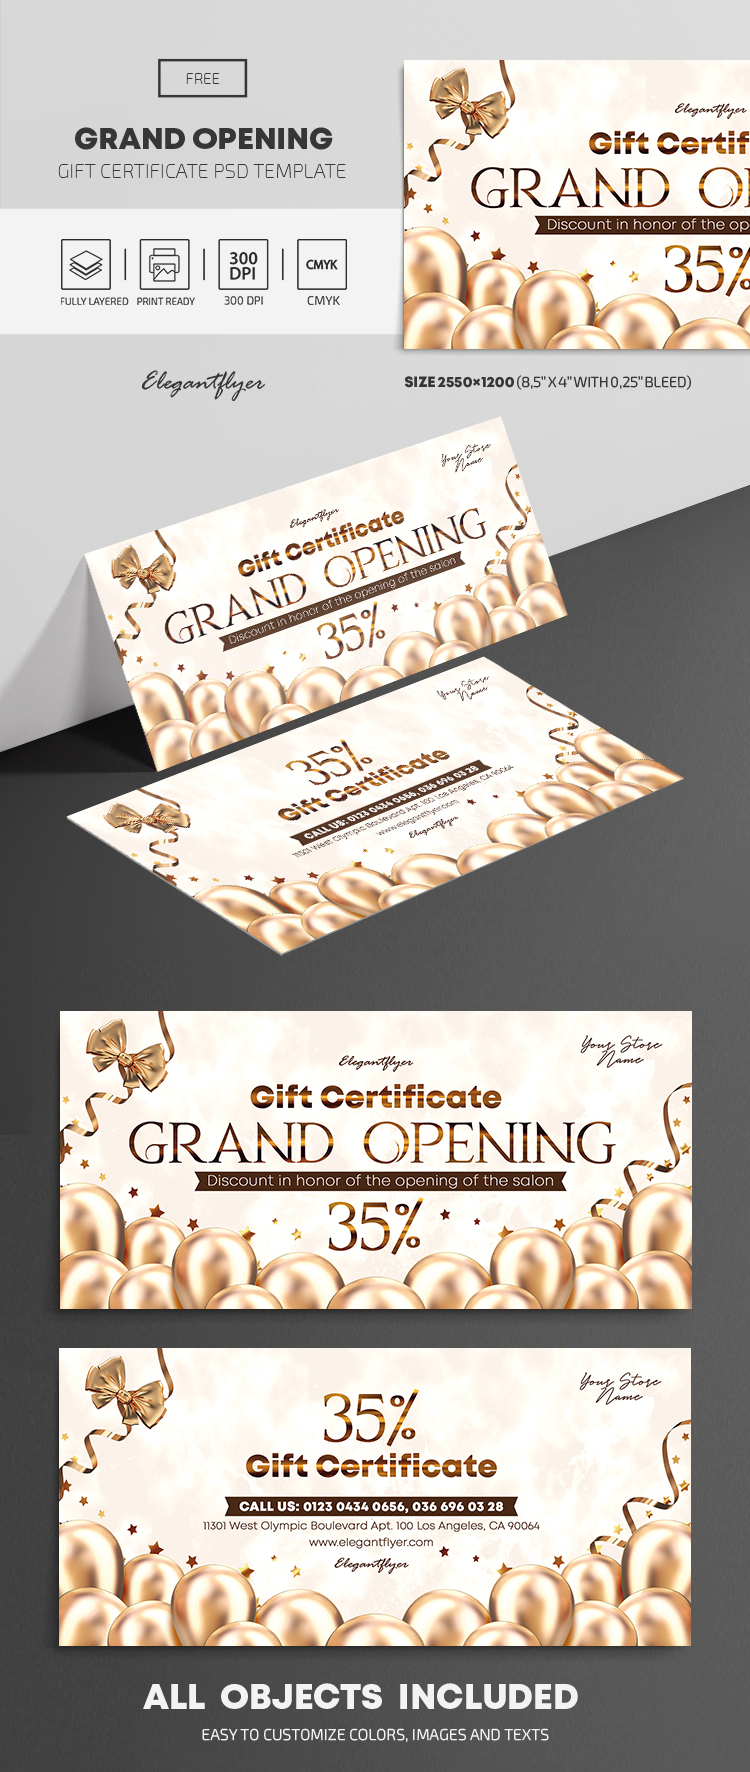 Grand Opening – Free Gift Certificate Template in PSD